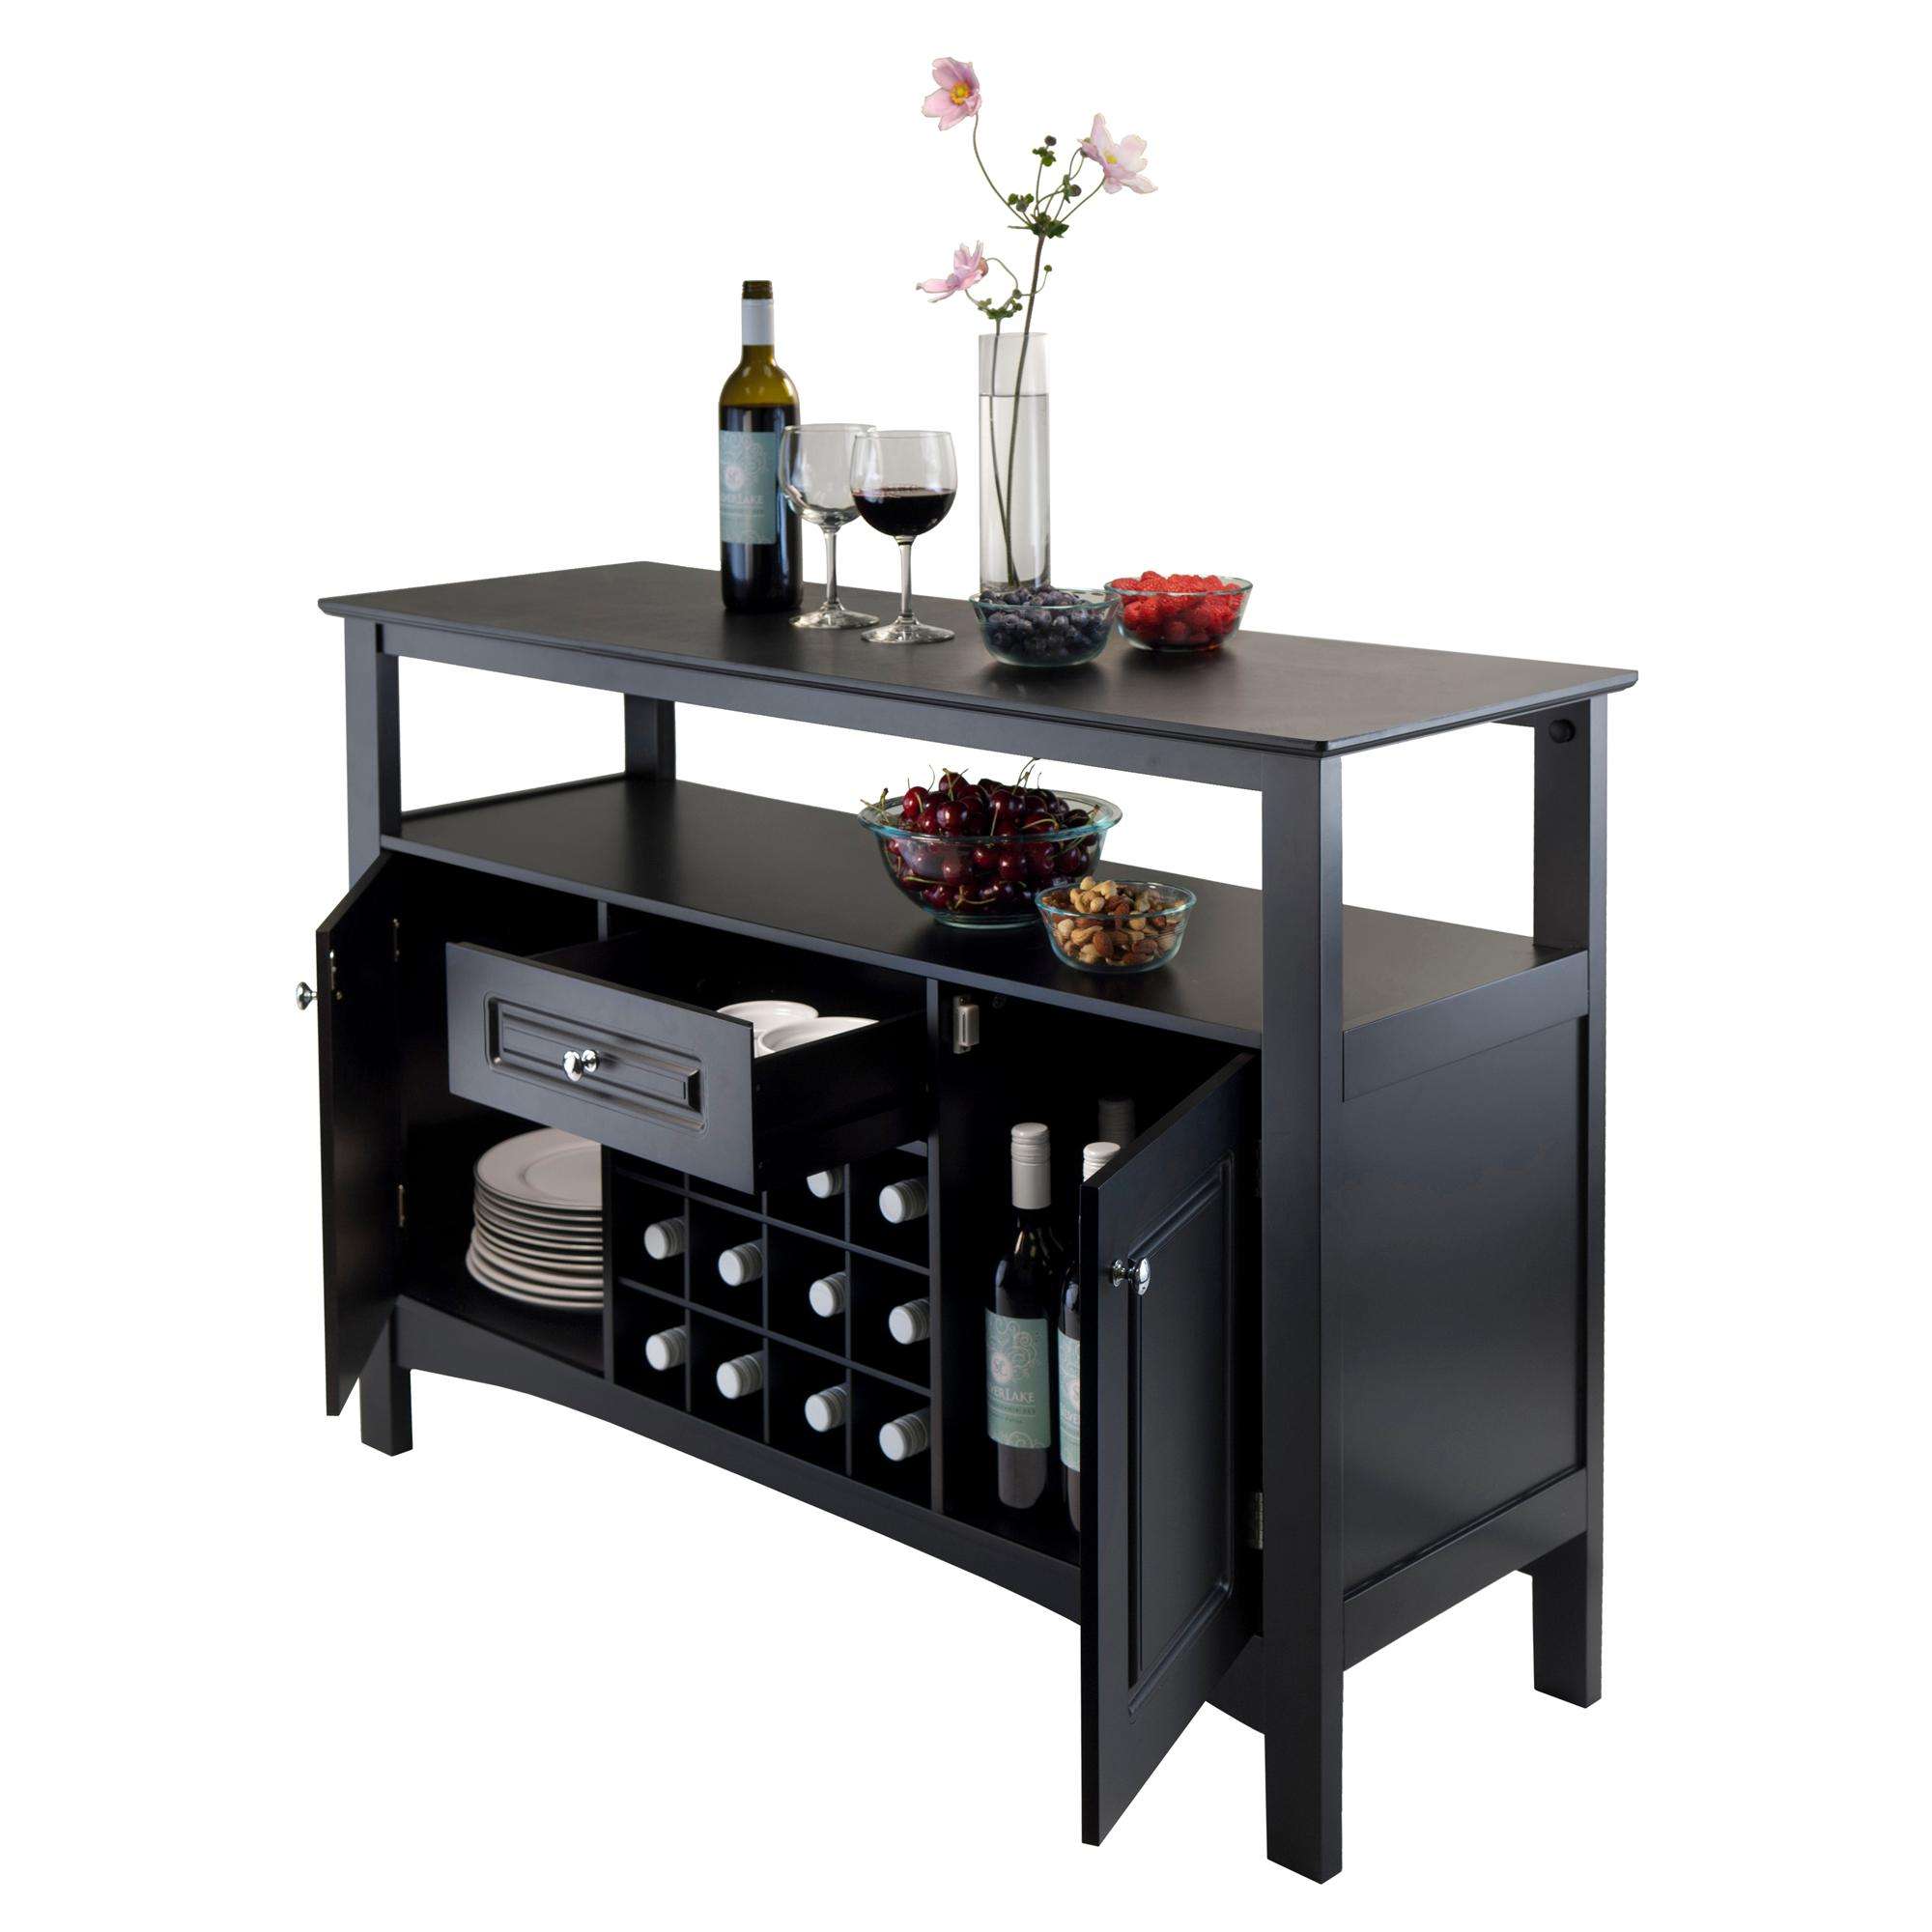 Winsome Wood Jasper Storage Buffet Home Kitchen: home bar furniture amazon